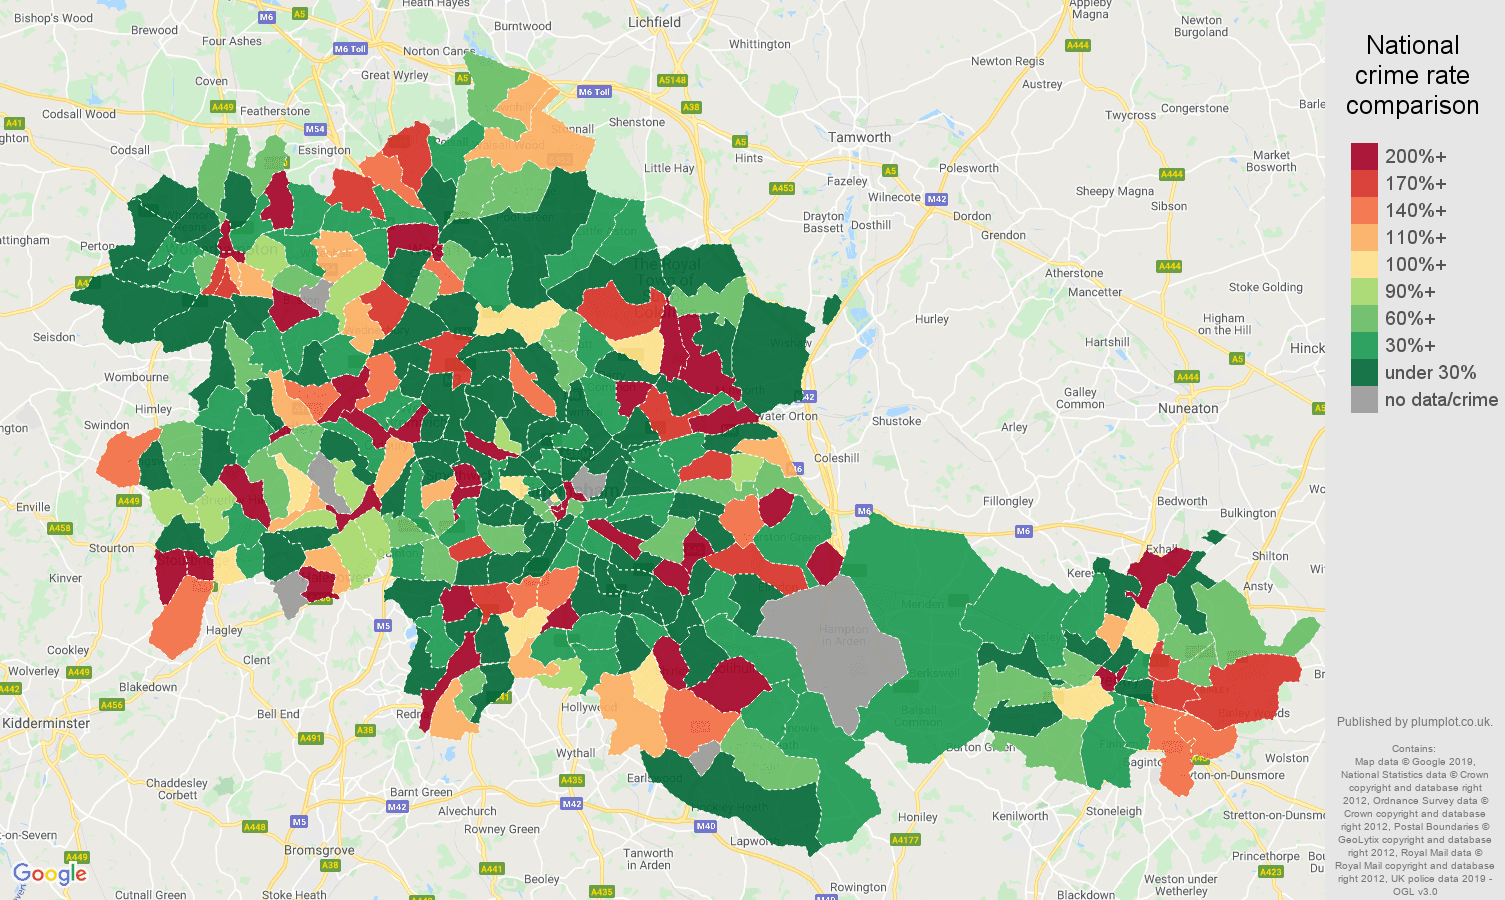 West Midlands county shoplifting crime rate comparison map